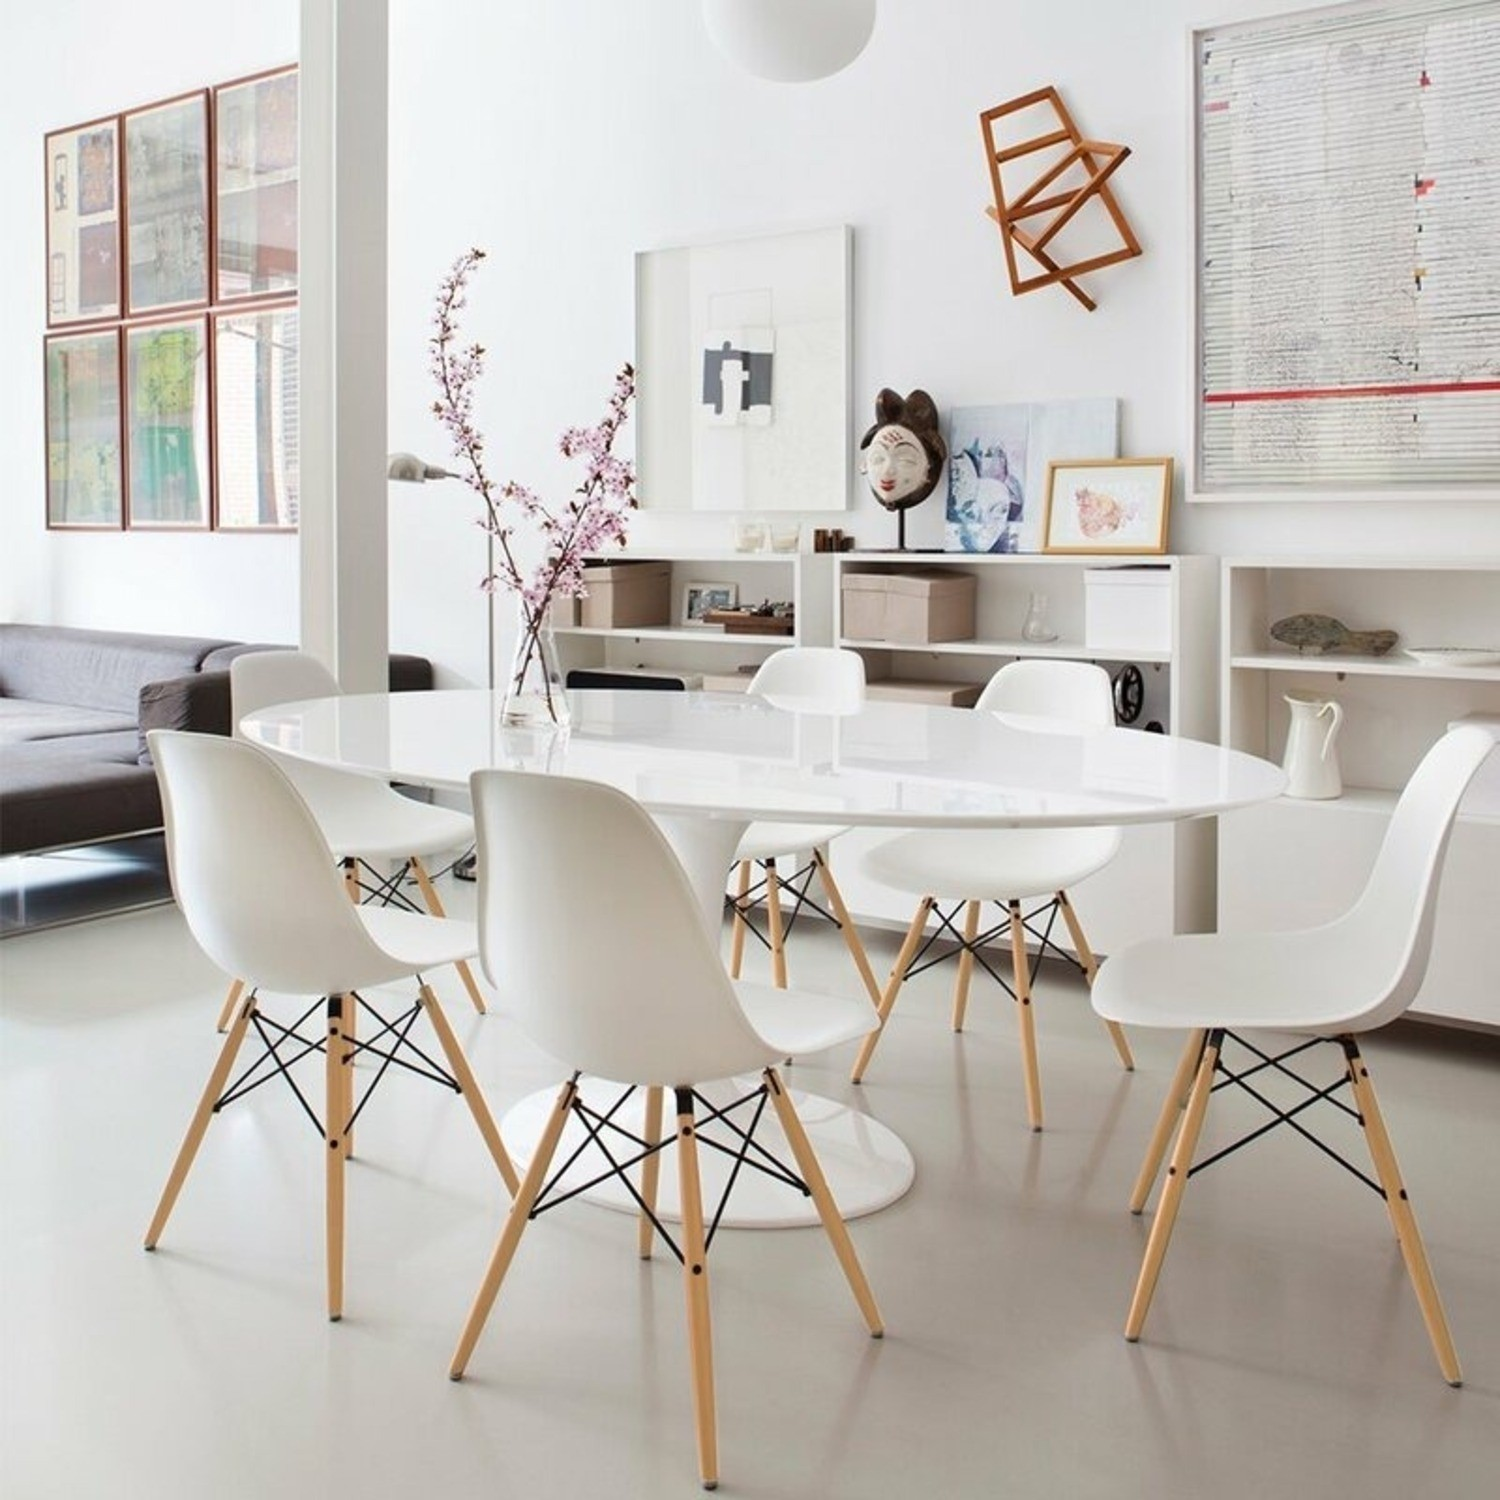 How To Choose Kitchen And Dining Chairs